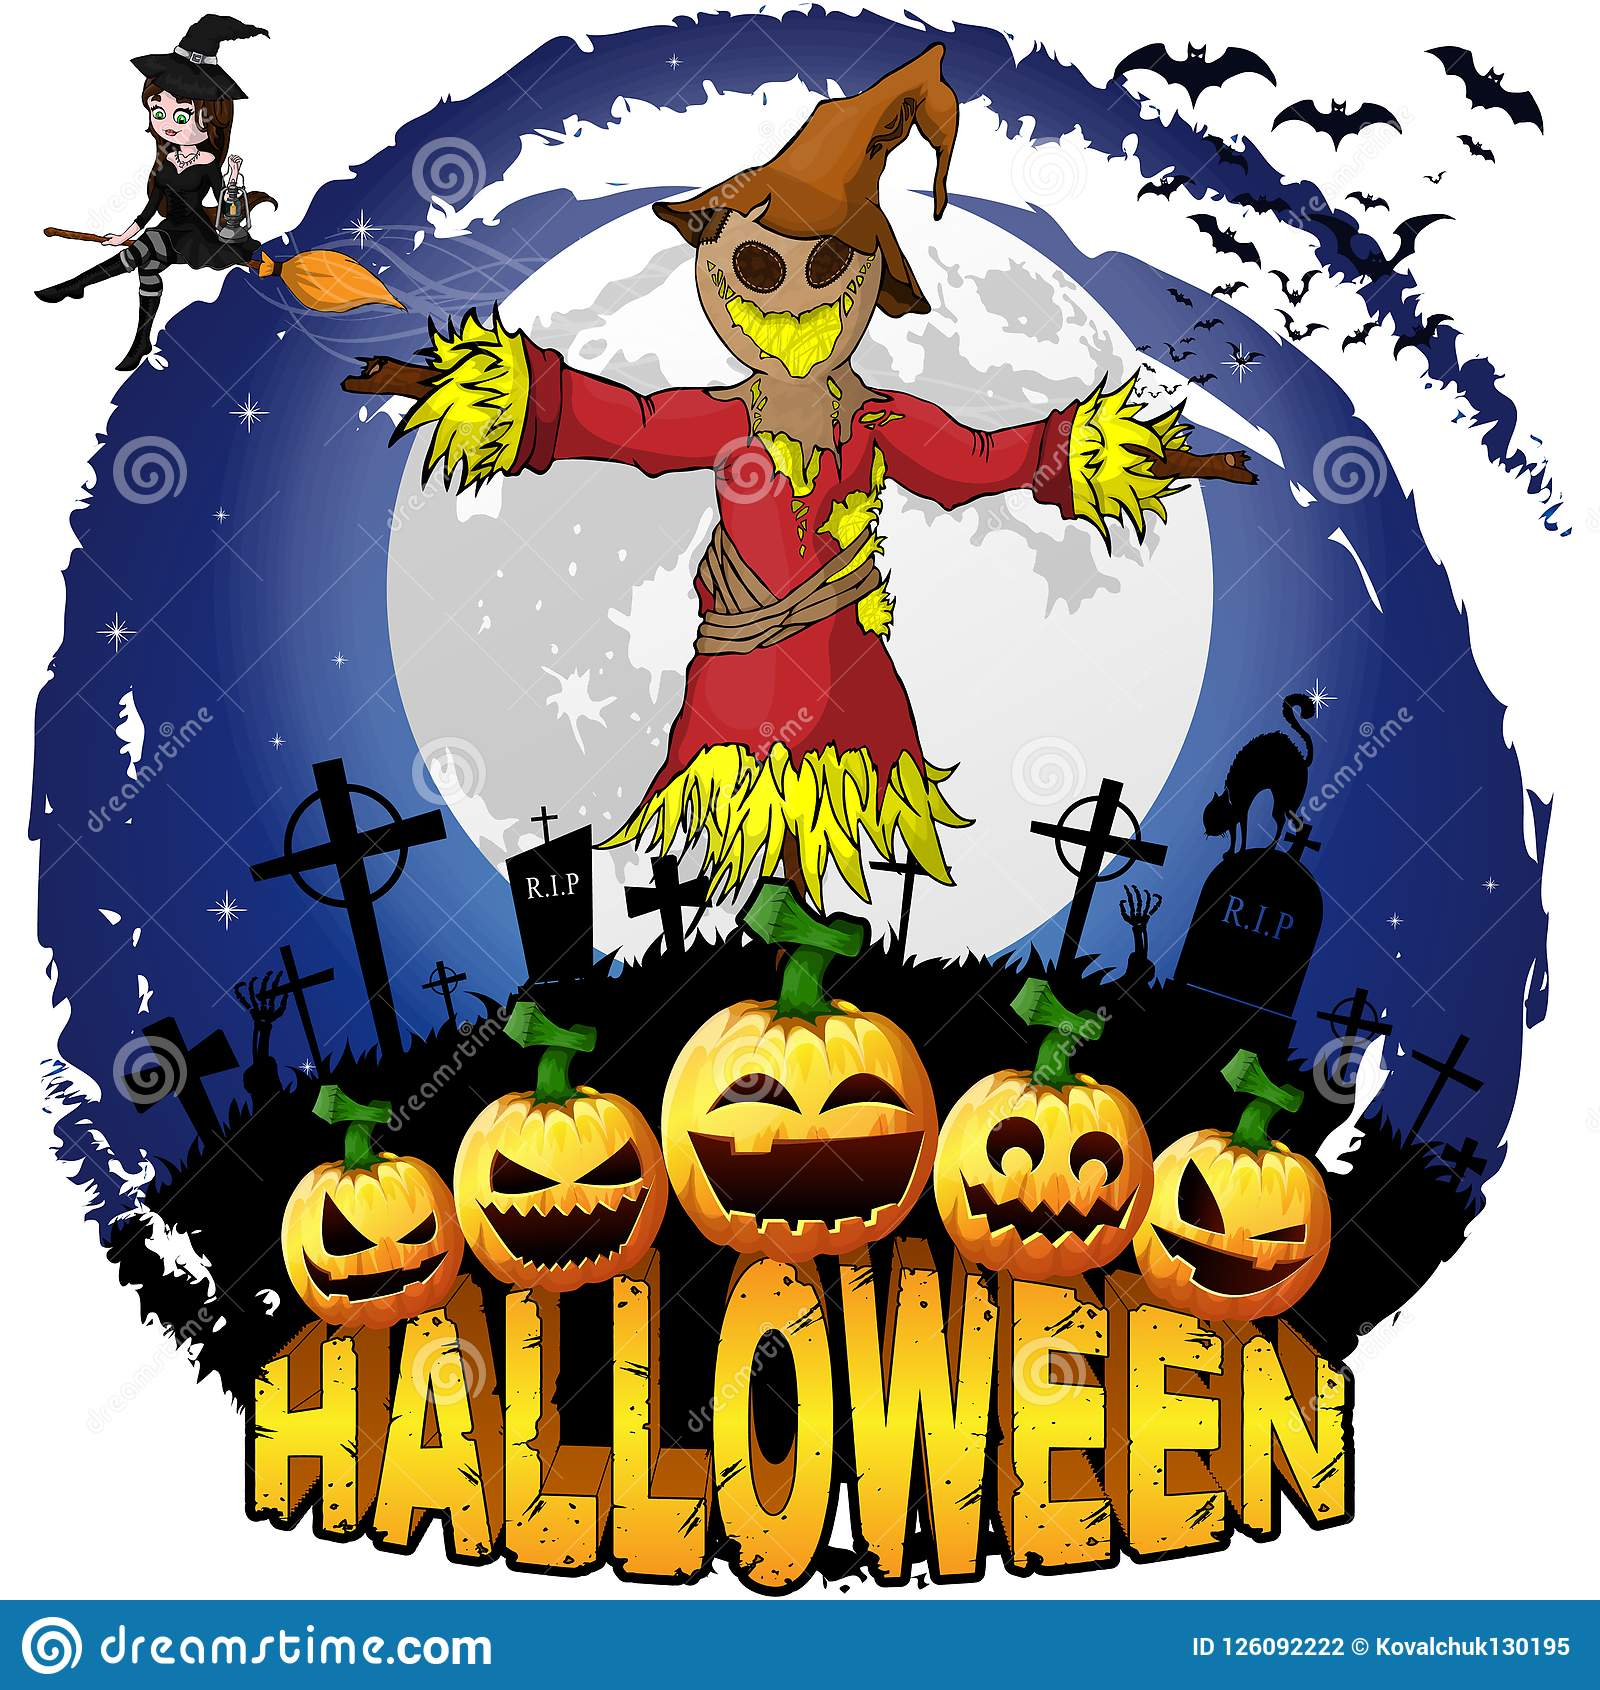 Halloween Design Template With Scarecrow. Stock Vector ...